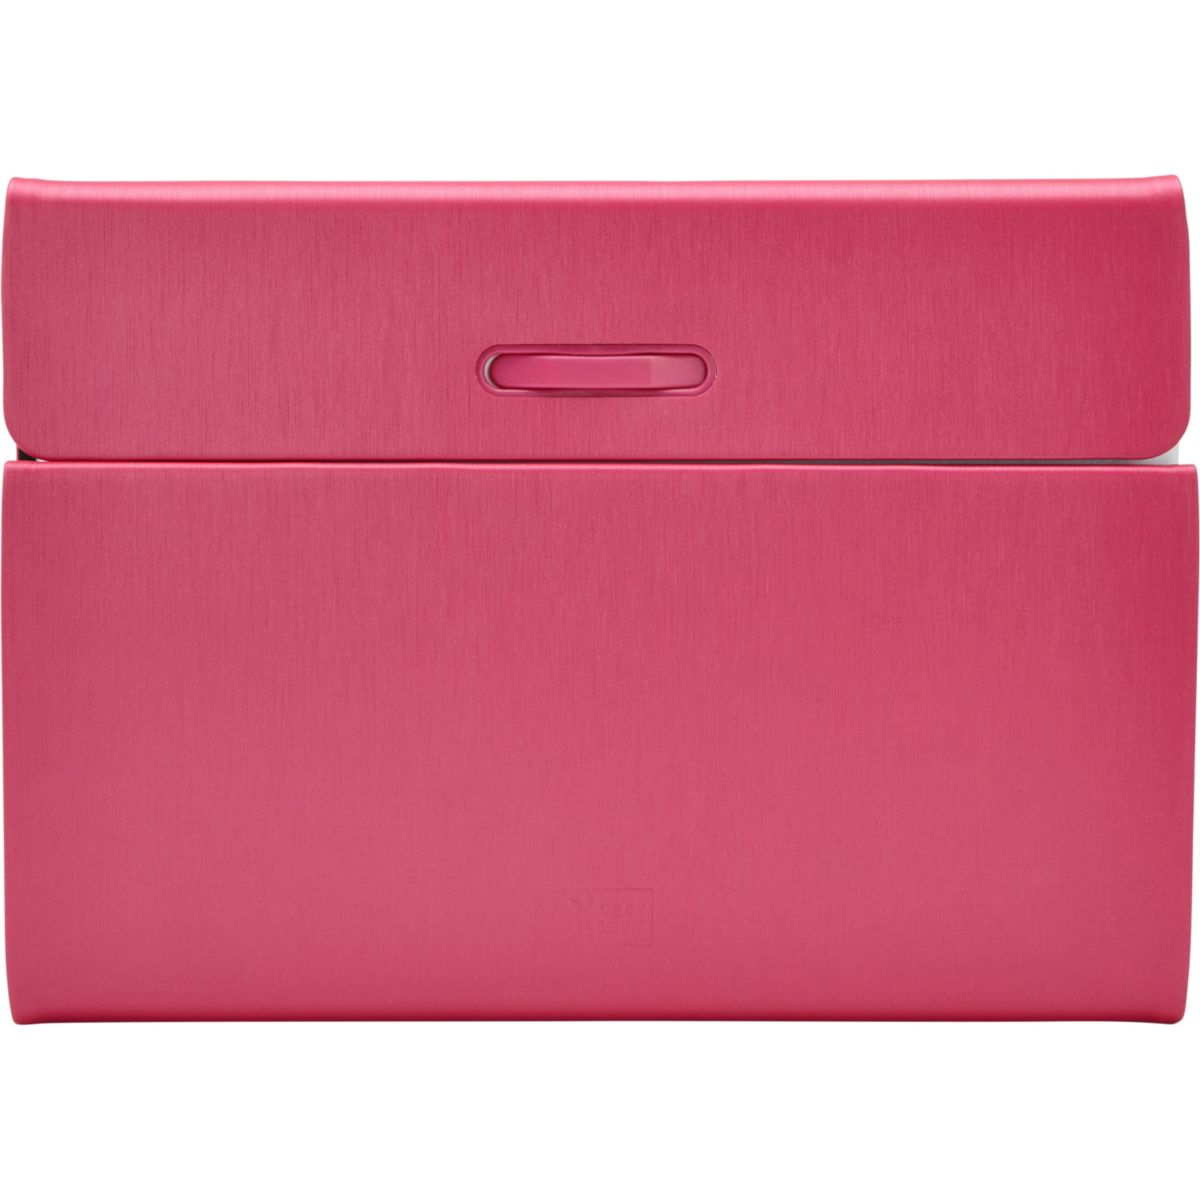 Folio CASELOGIC Porte-folio rotatif rose iPad Air 2 (photo)